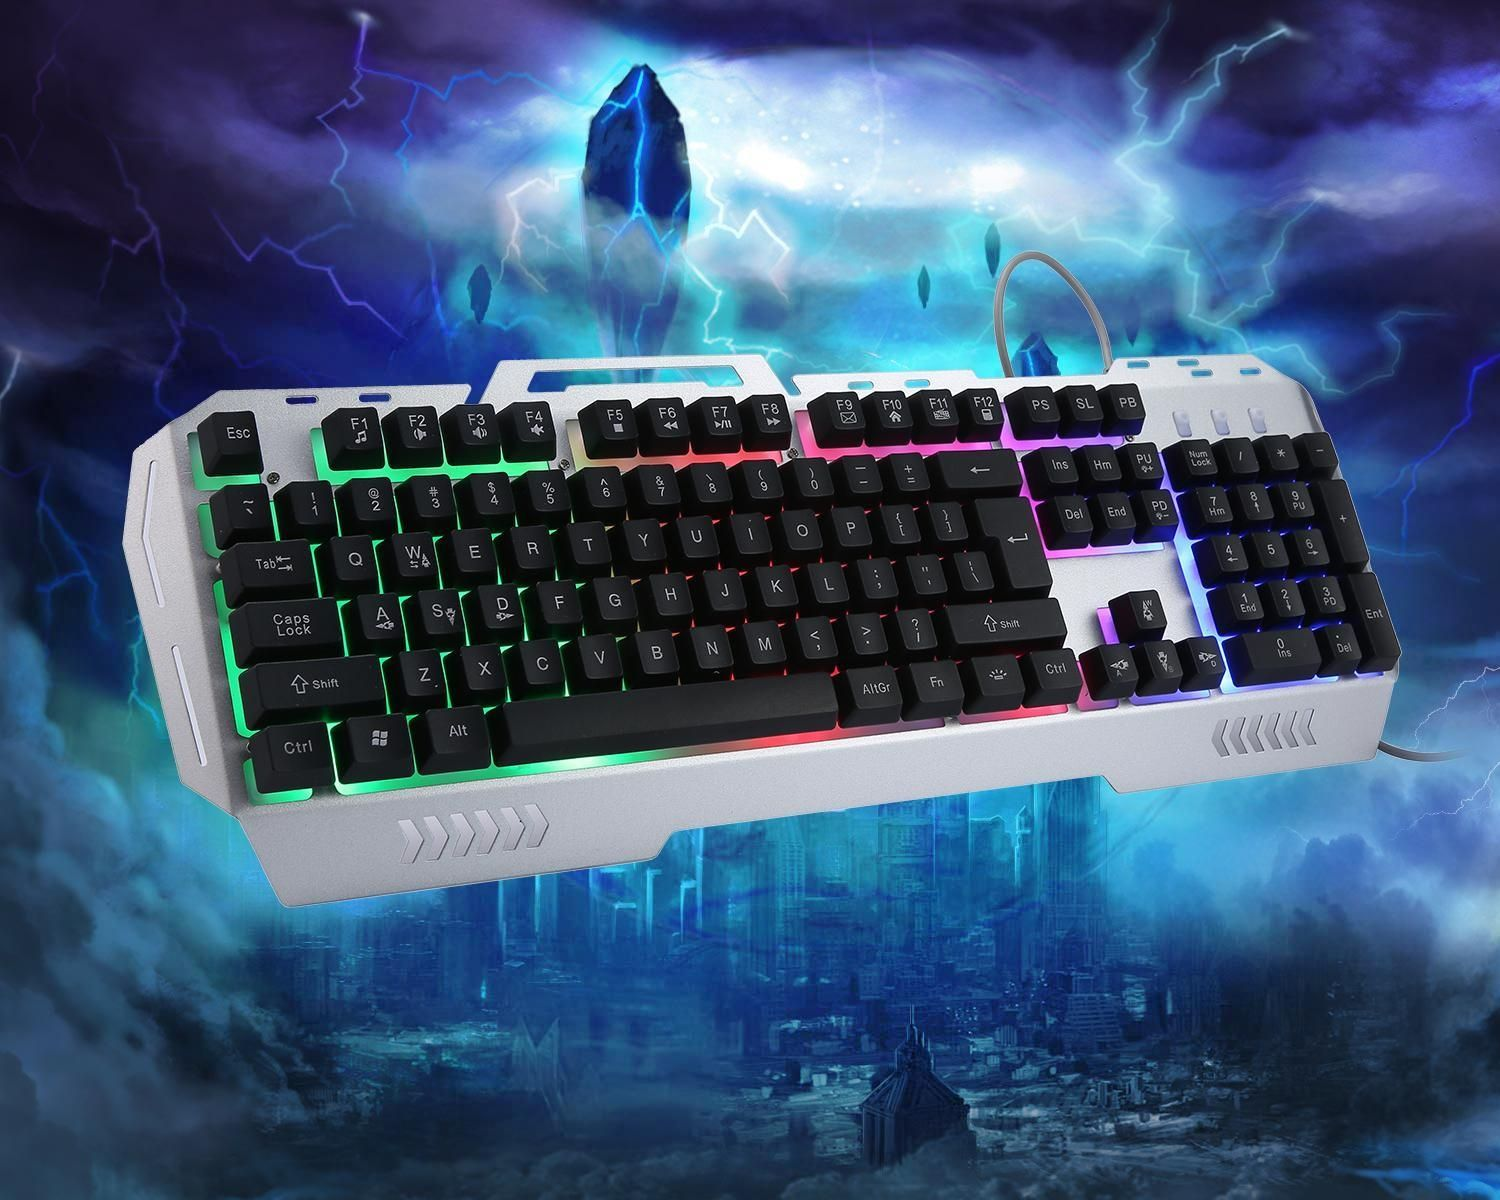 Louis Will K3 USB Wired Optical Gaming Keyboard And Mouse Set, LED ...